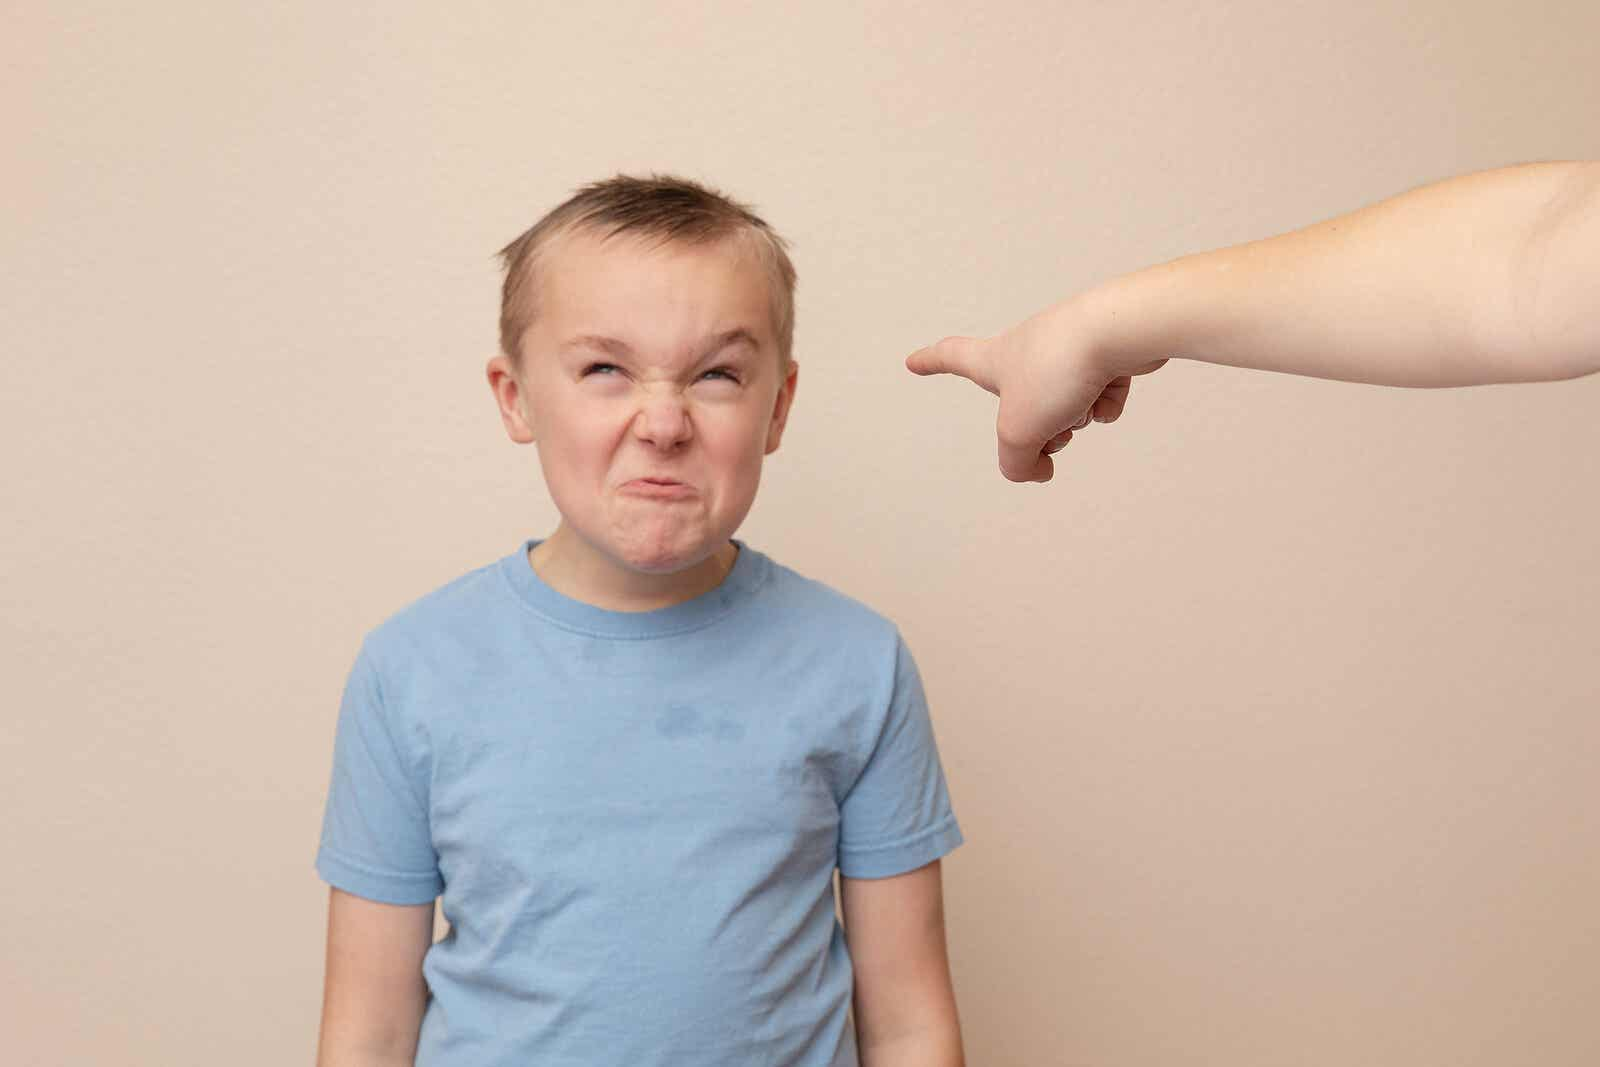 A parent pointing at a child that's making an angry face.